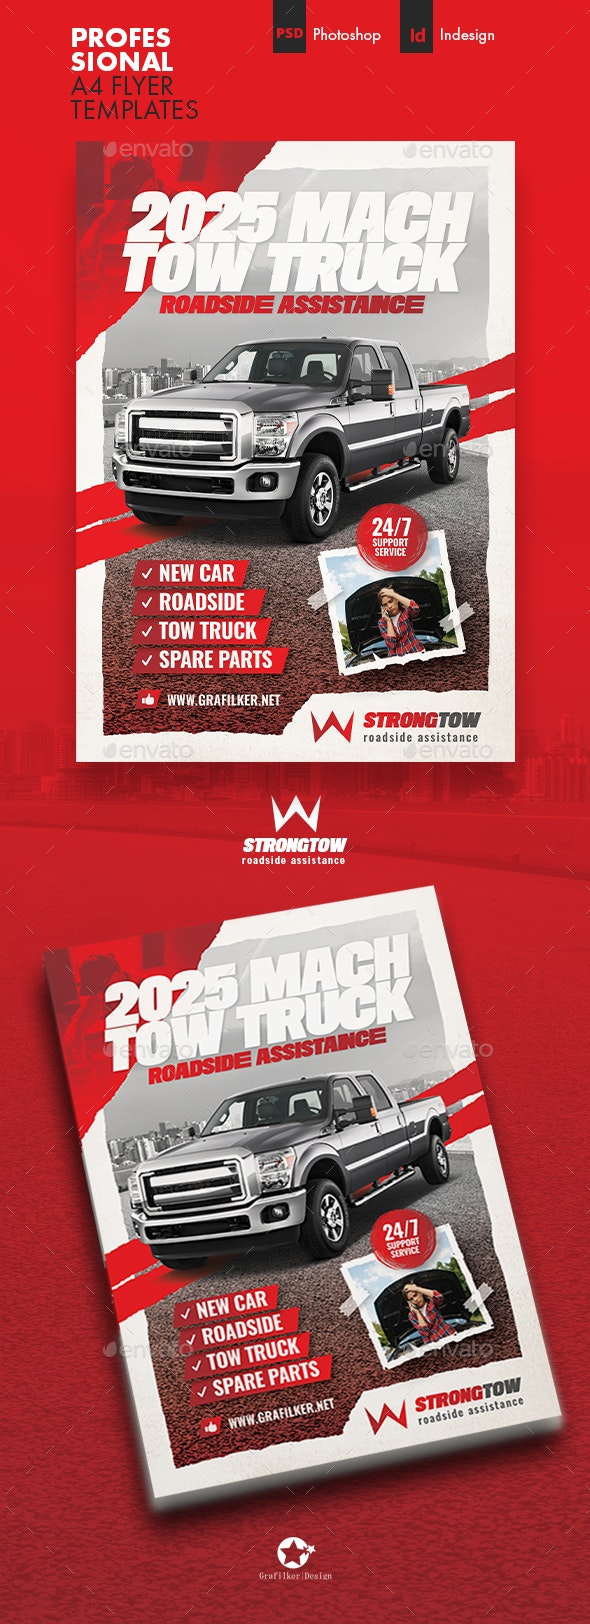 Tow Truck Flyer Templates - Corporate Flyers